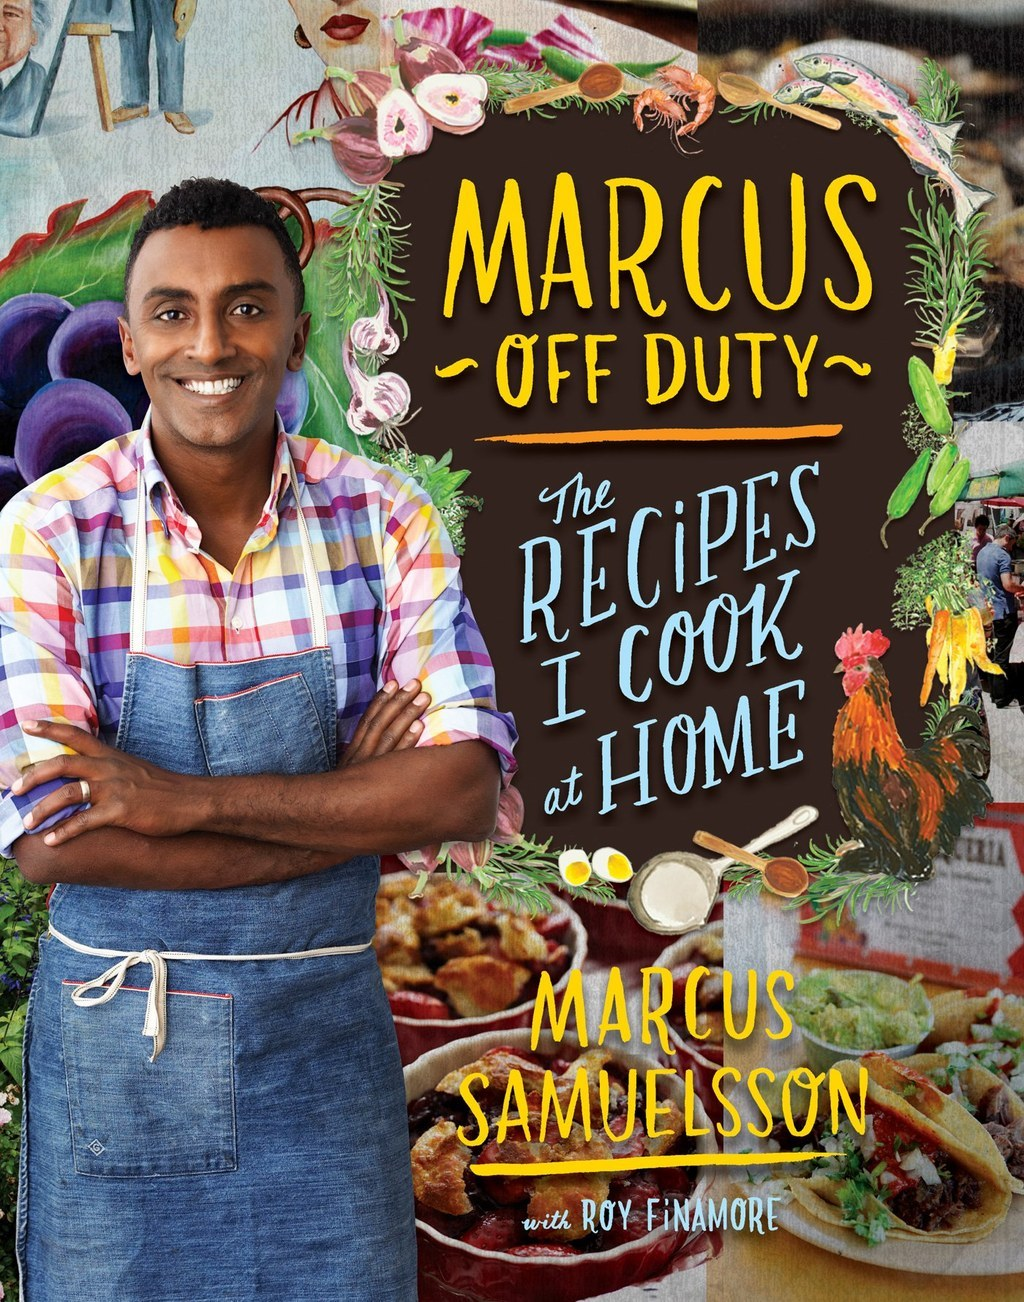 Here's What Happens When You Ask Marcus Samuelsson To Make You Breakfast